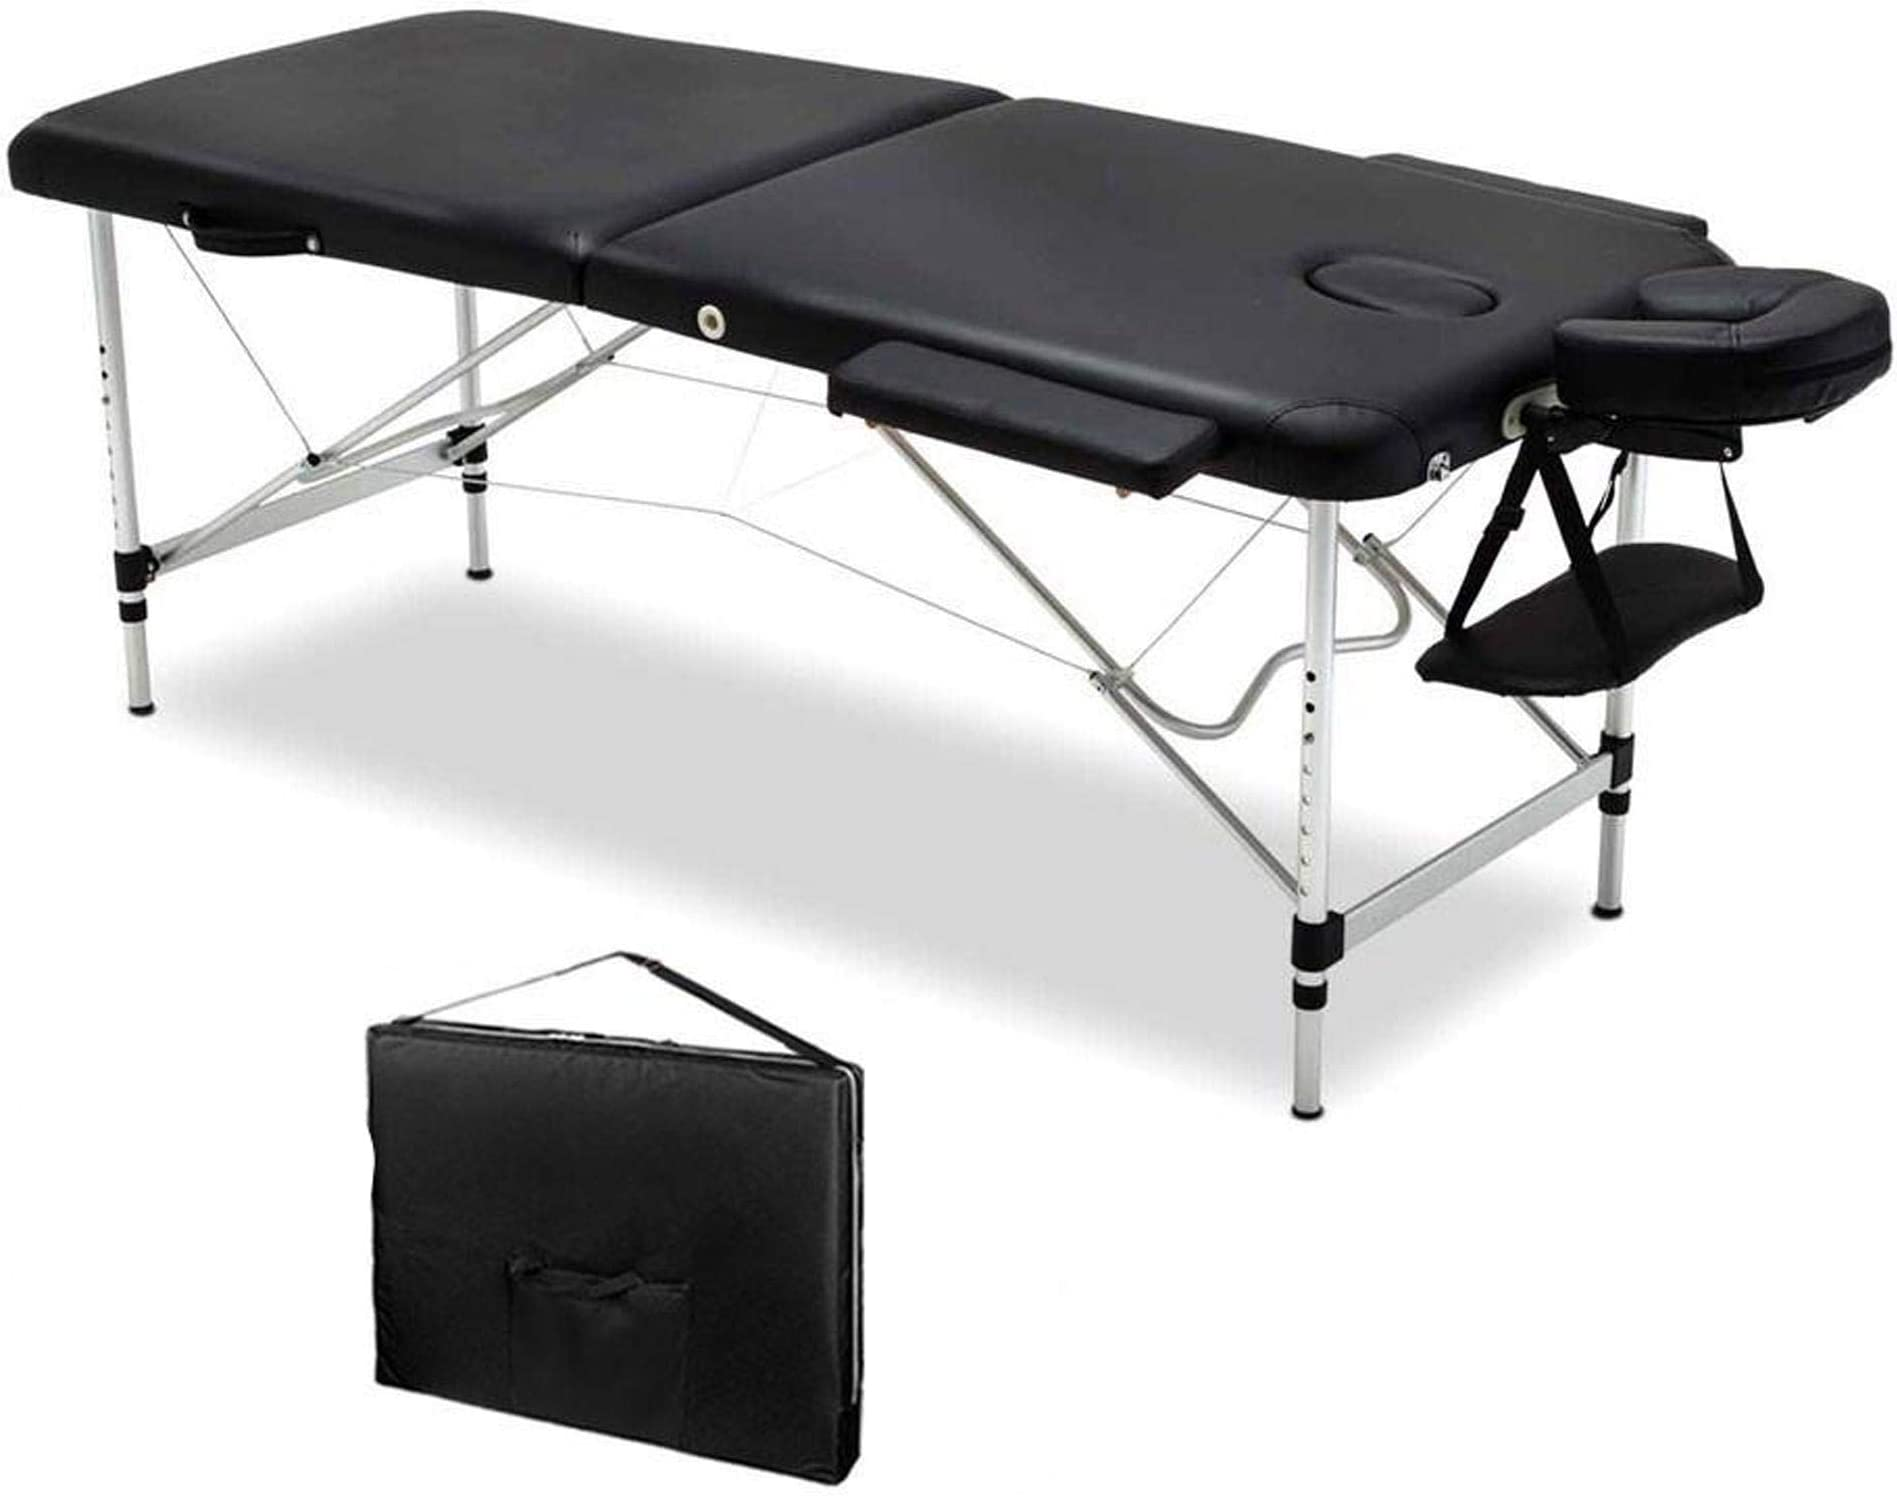 Portable Massage Table Portable SPA Therapy Best Beauty Body Couch Bed  Table Package